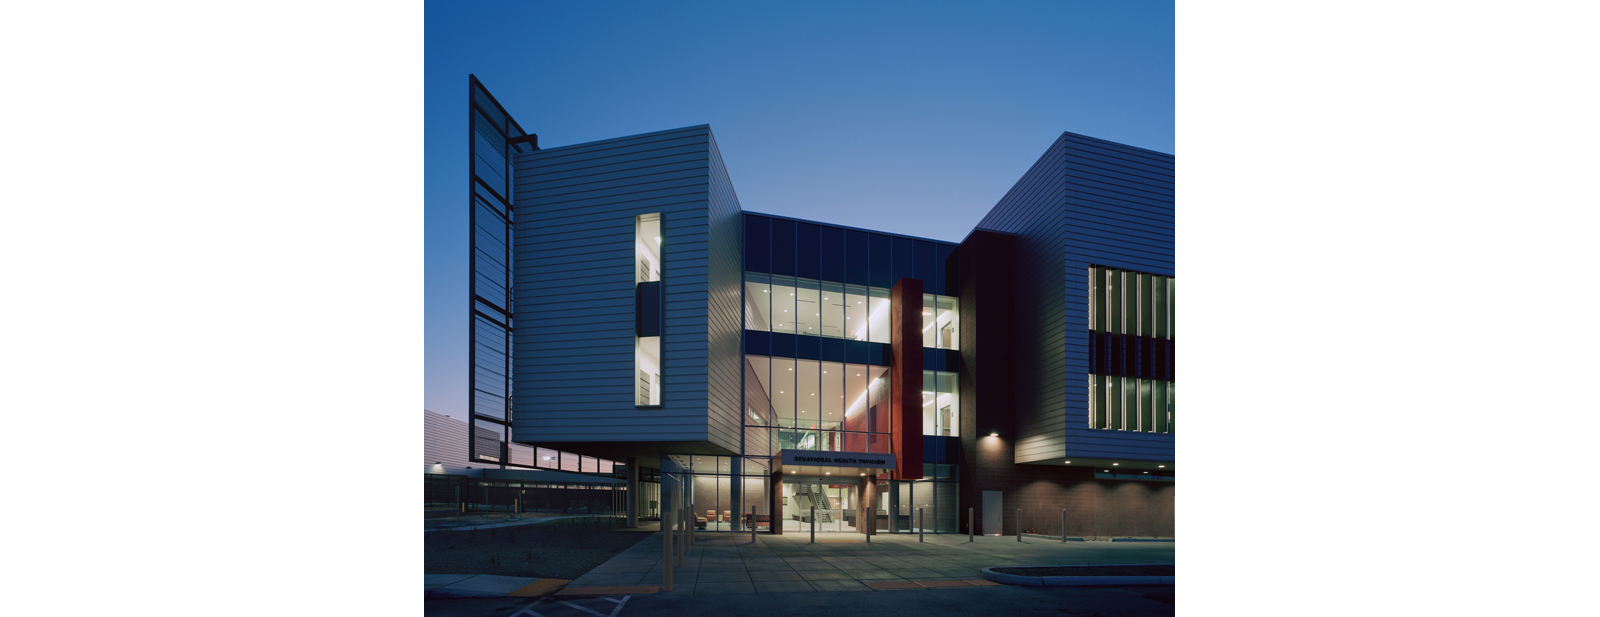 University of Arizona Behavioral Health Pavilion & Crisis Response Center